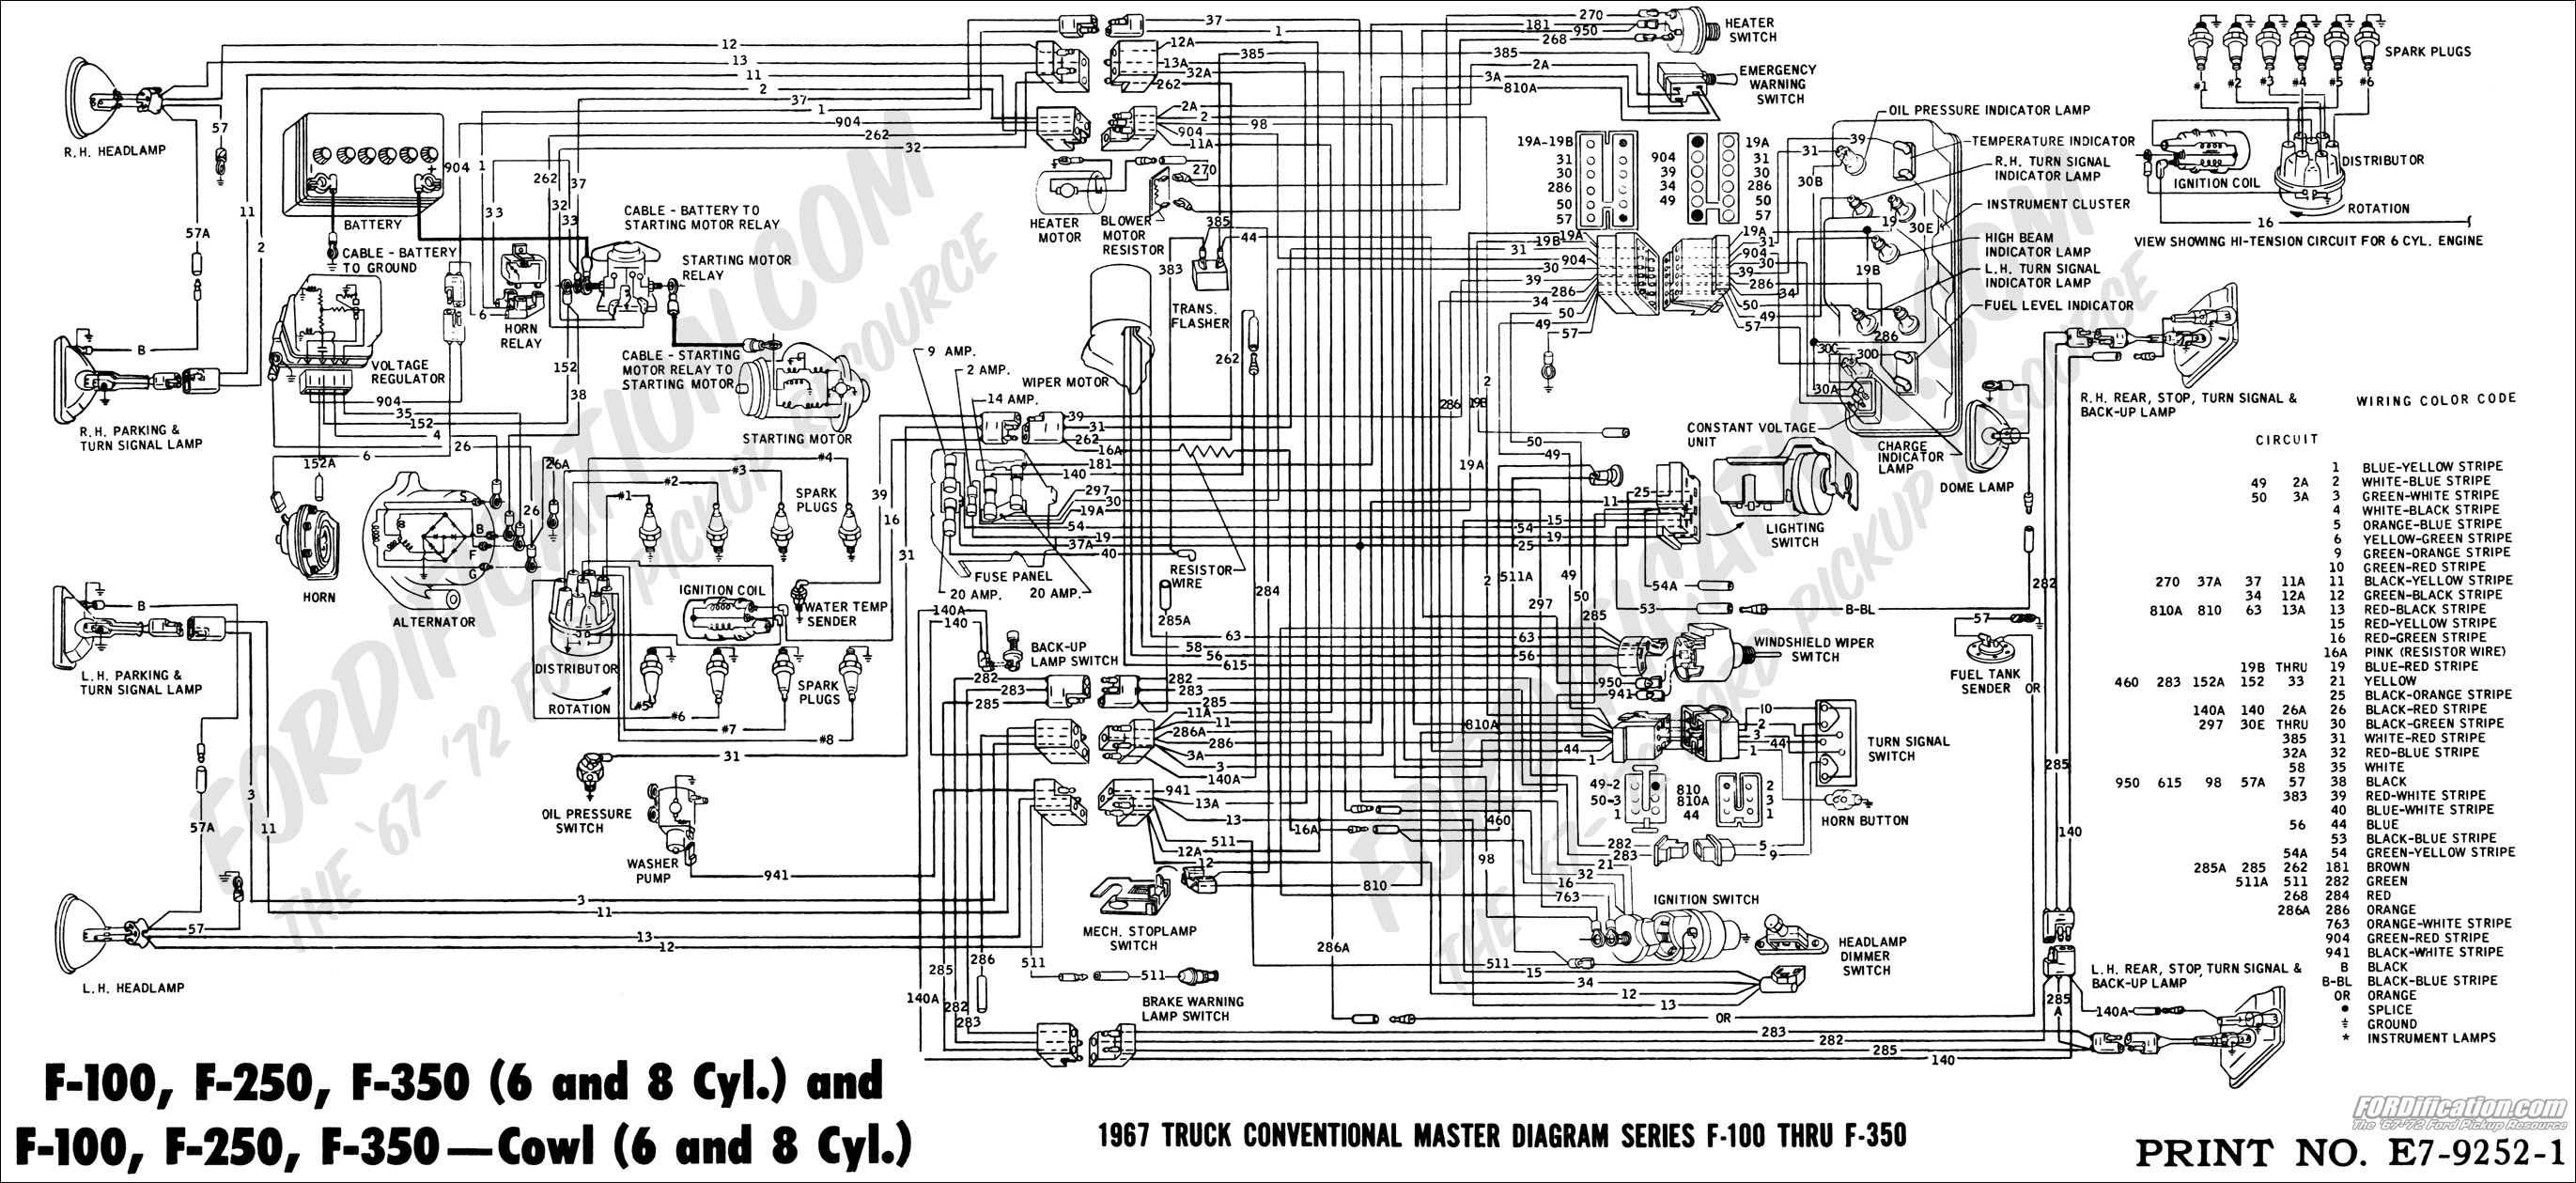 2002 F350 Wiring Harness Real Diagram 2007 Weekend Warrior Ford F250 Online Schematics Rh Delvato Co Transmission